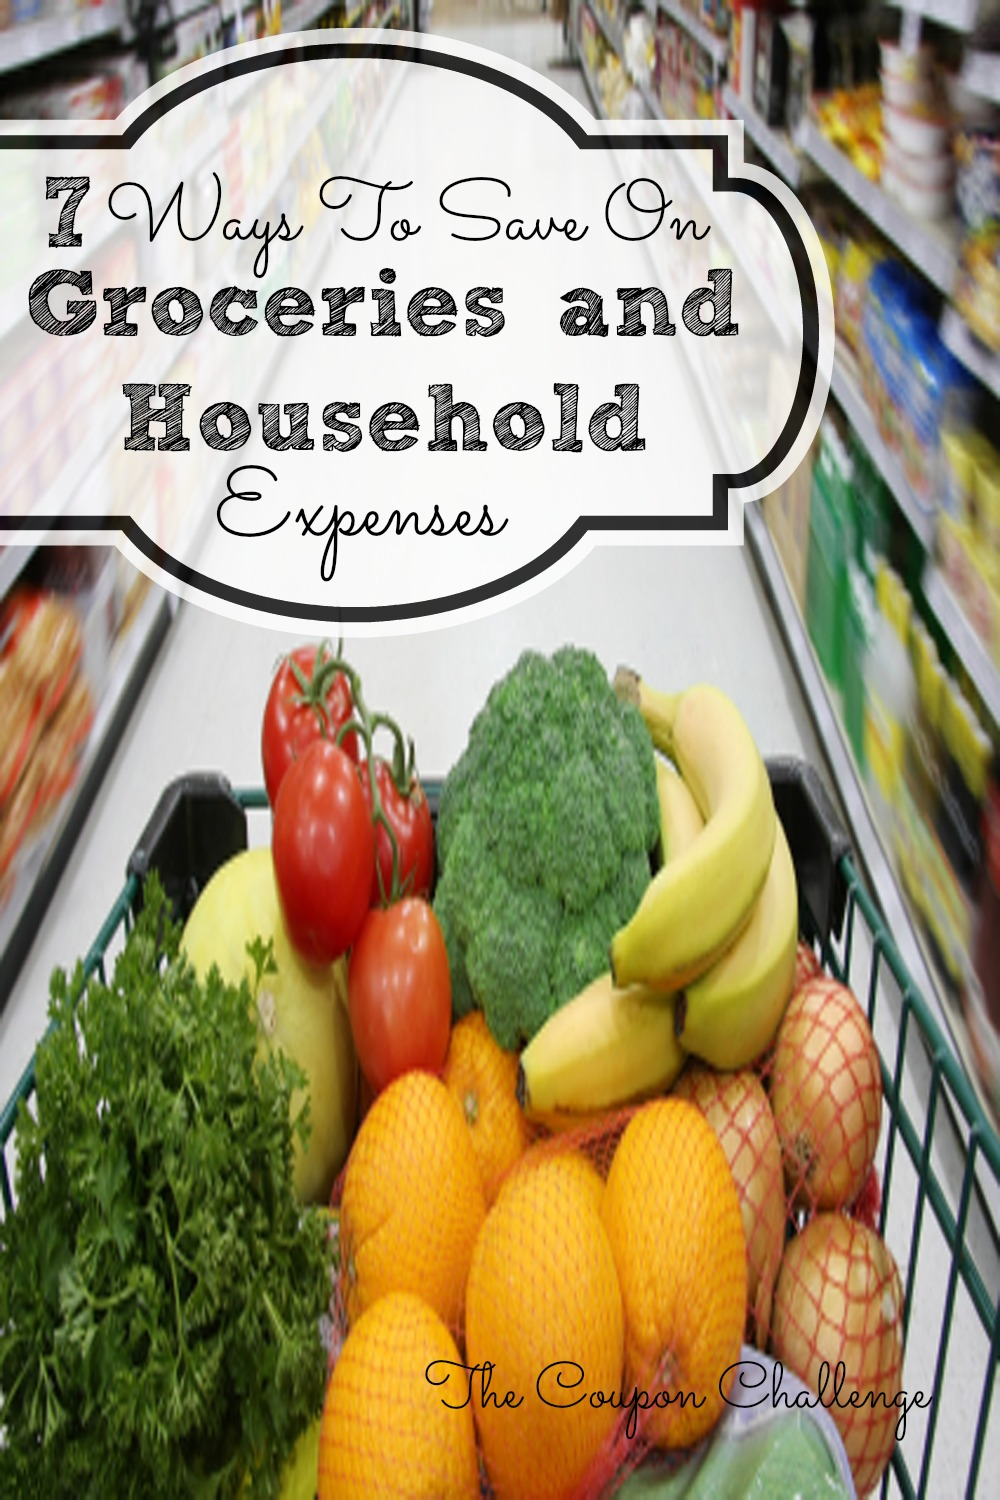 7-Ways-To-Save-Money-On-Groceries-&-Household-Expenses